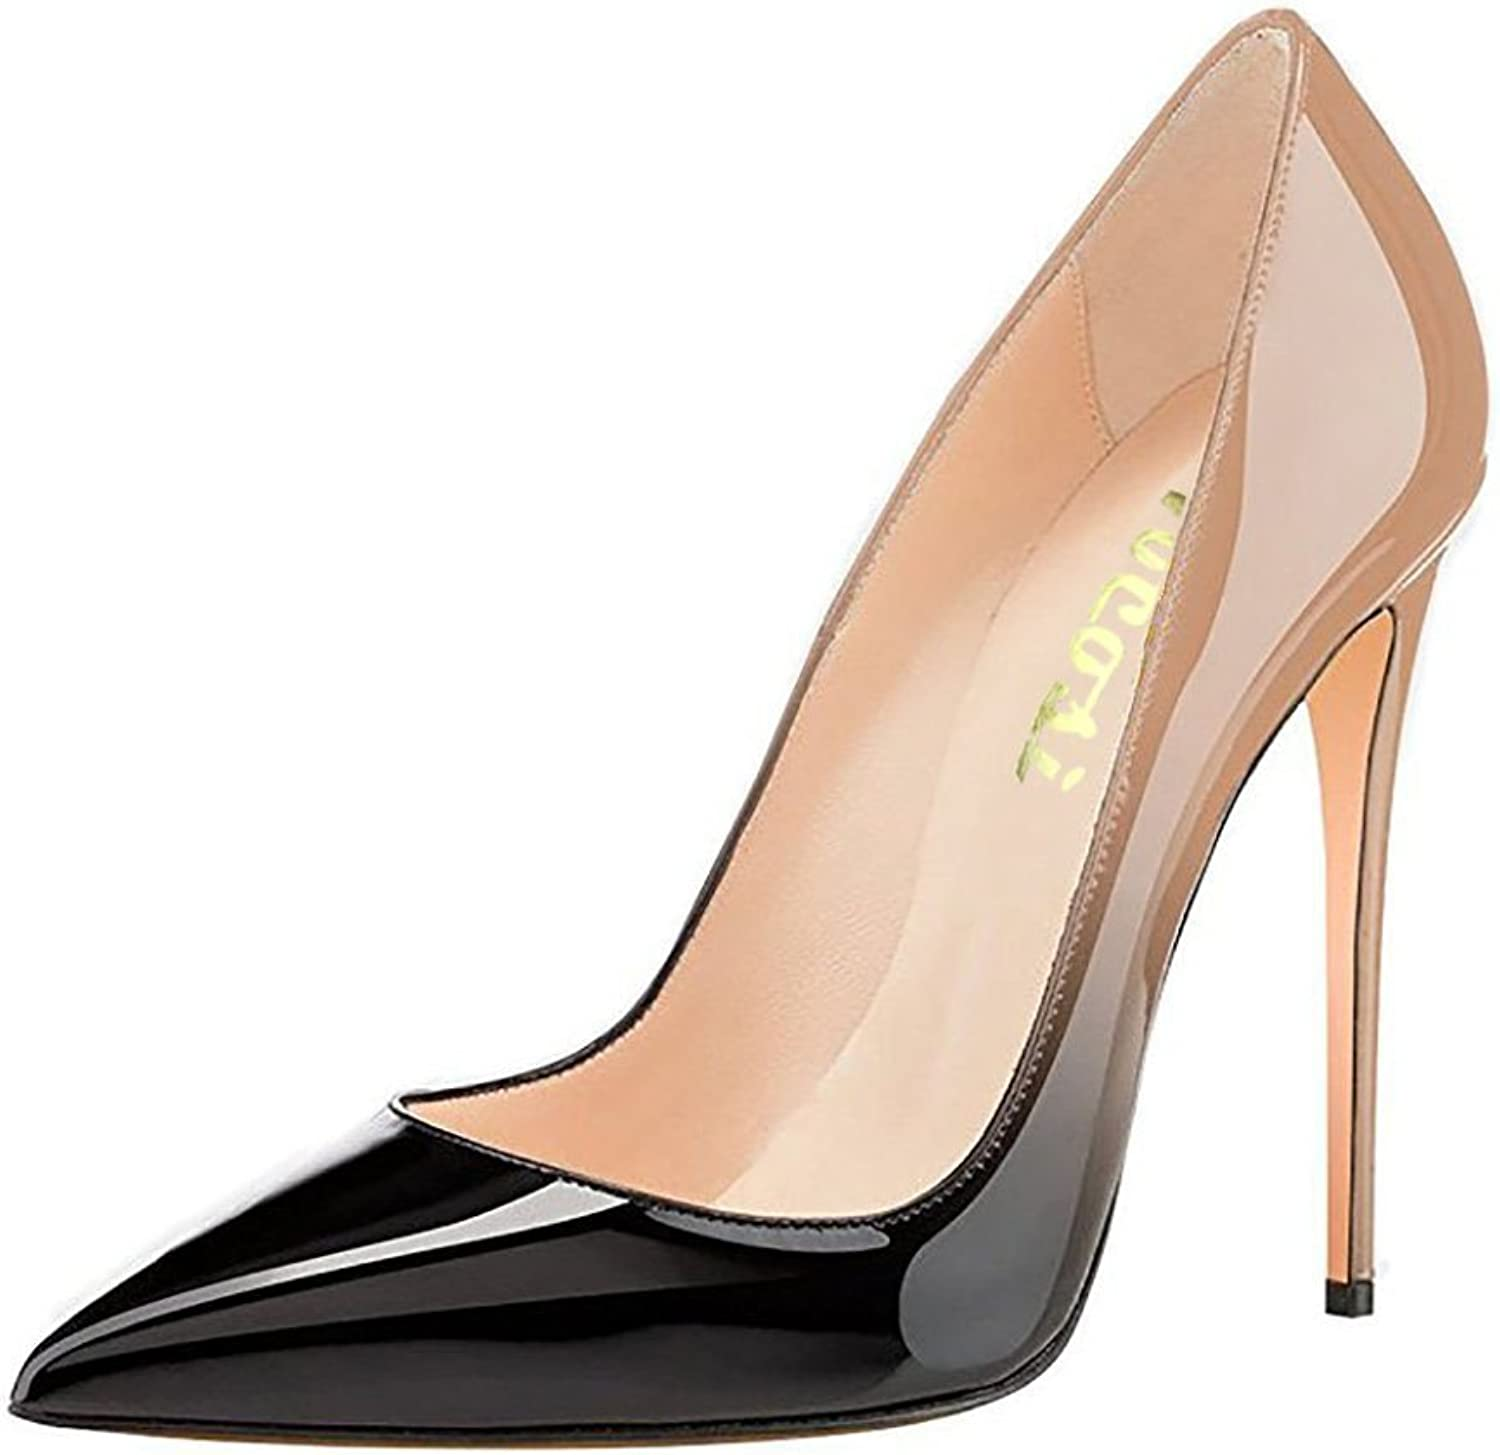 VOCOSI Pointy Toe Pumps for Women,Patent Gradient Animal Print High Heels Usual Dress shoes